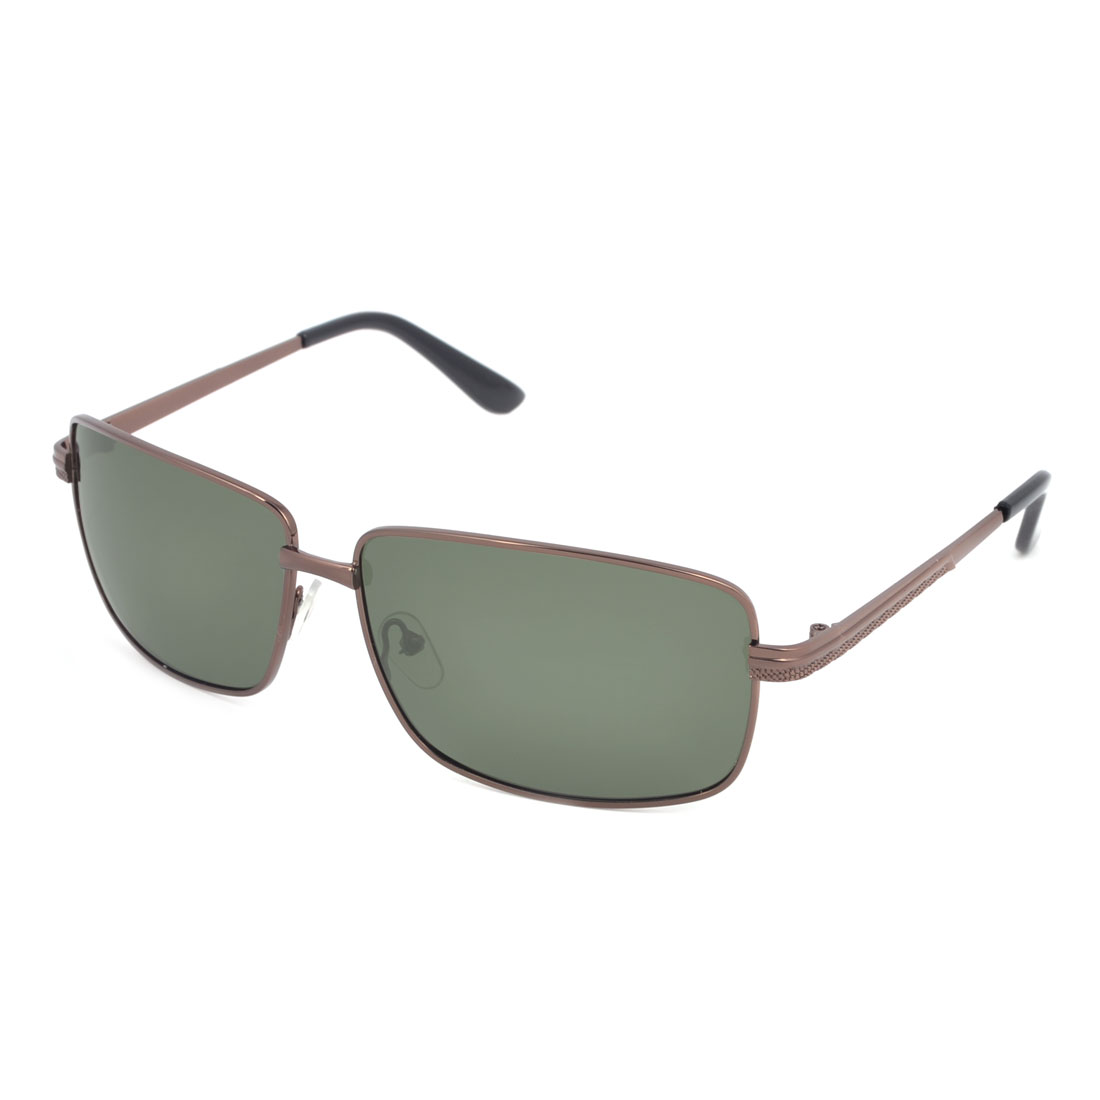 Man Brown Metallic Frame Single Bridge Polarized Sun Glasses